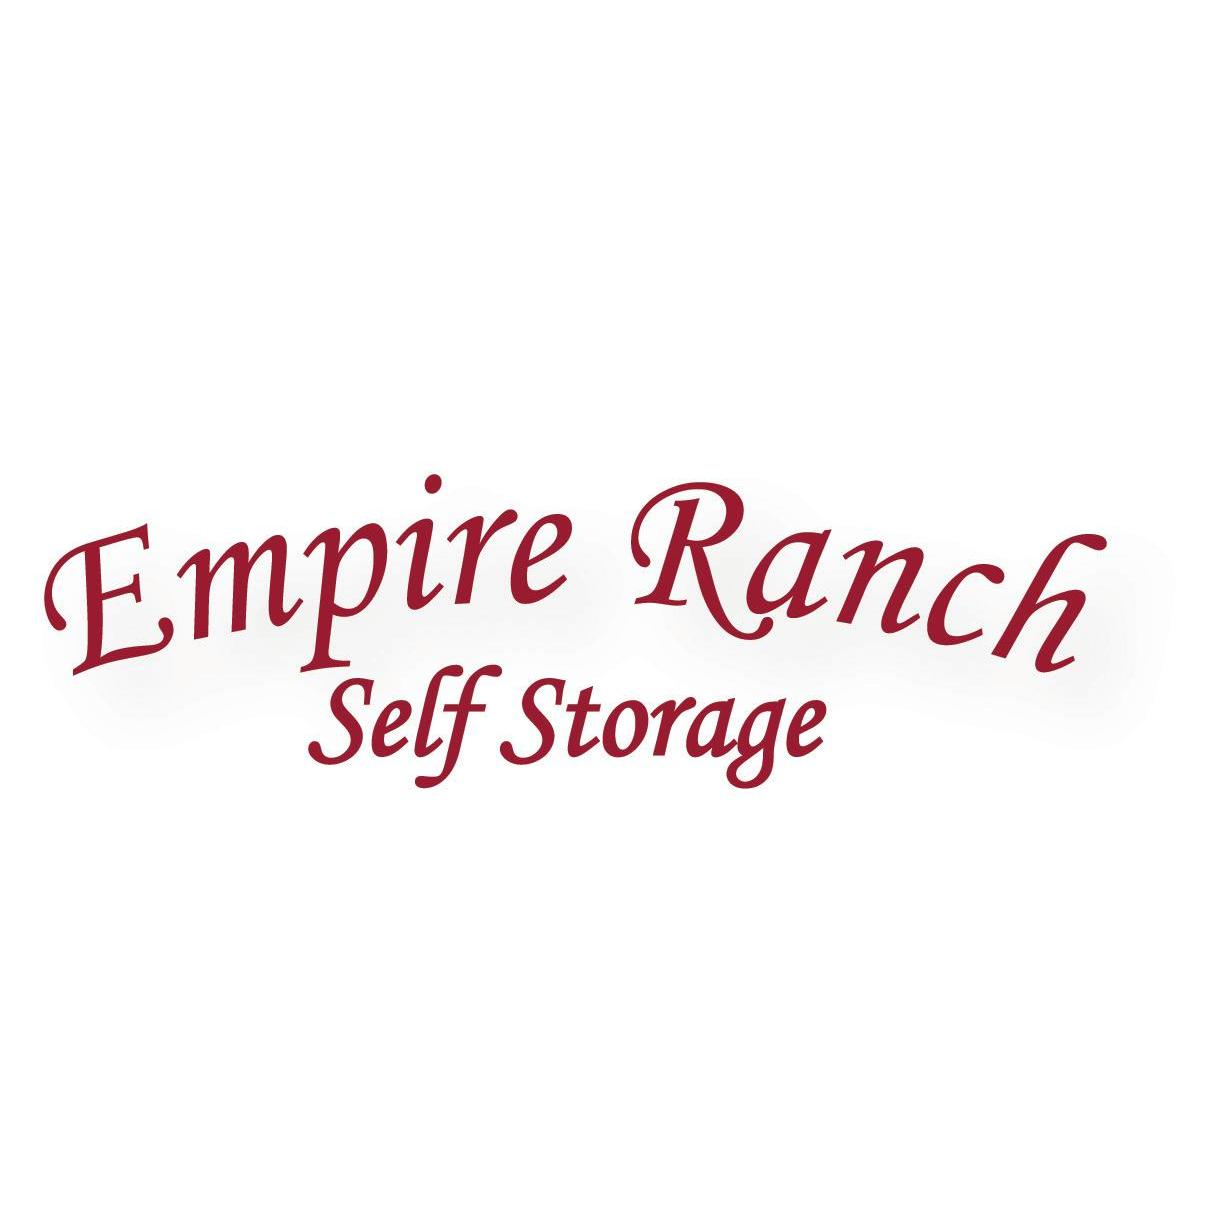 Empire Ranch Self Storage